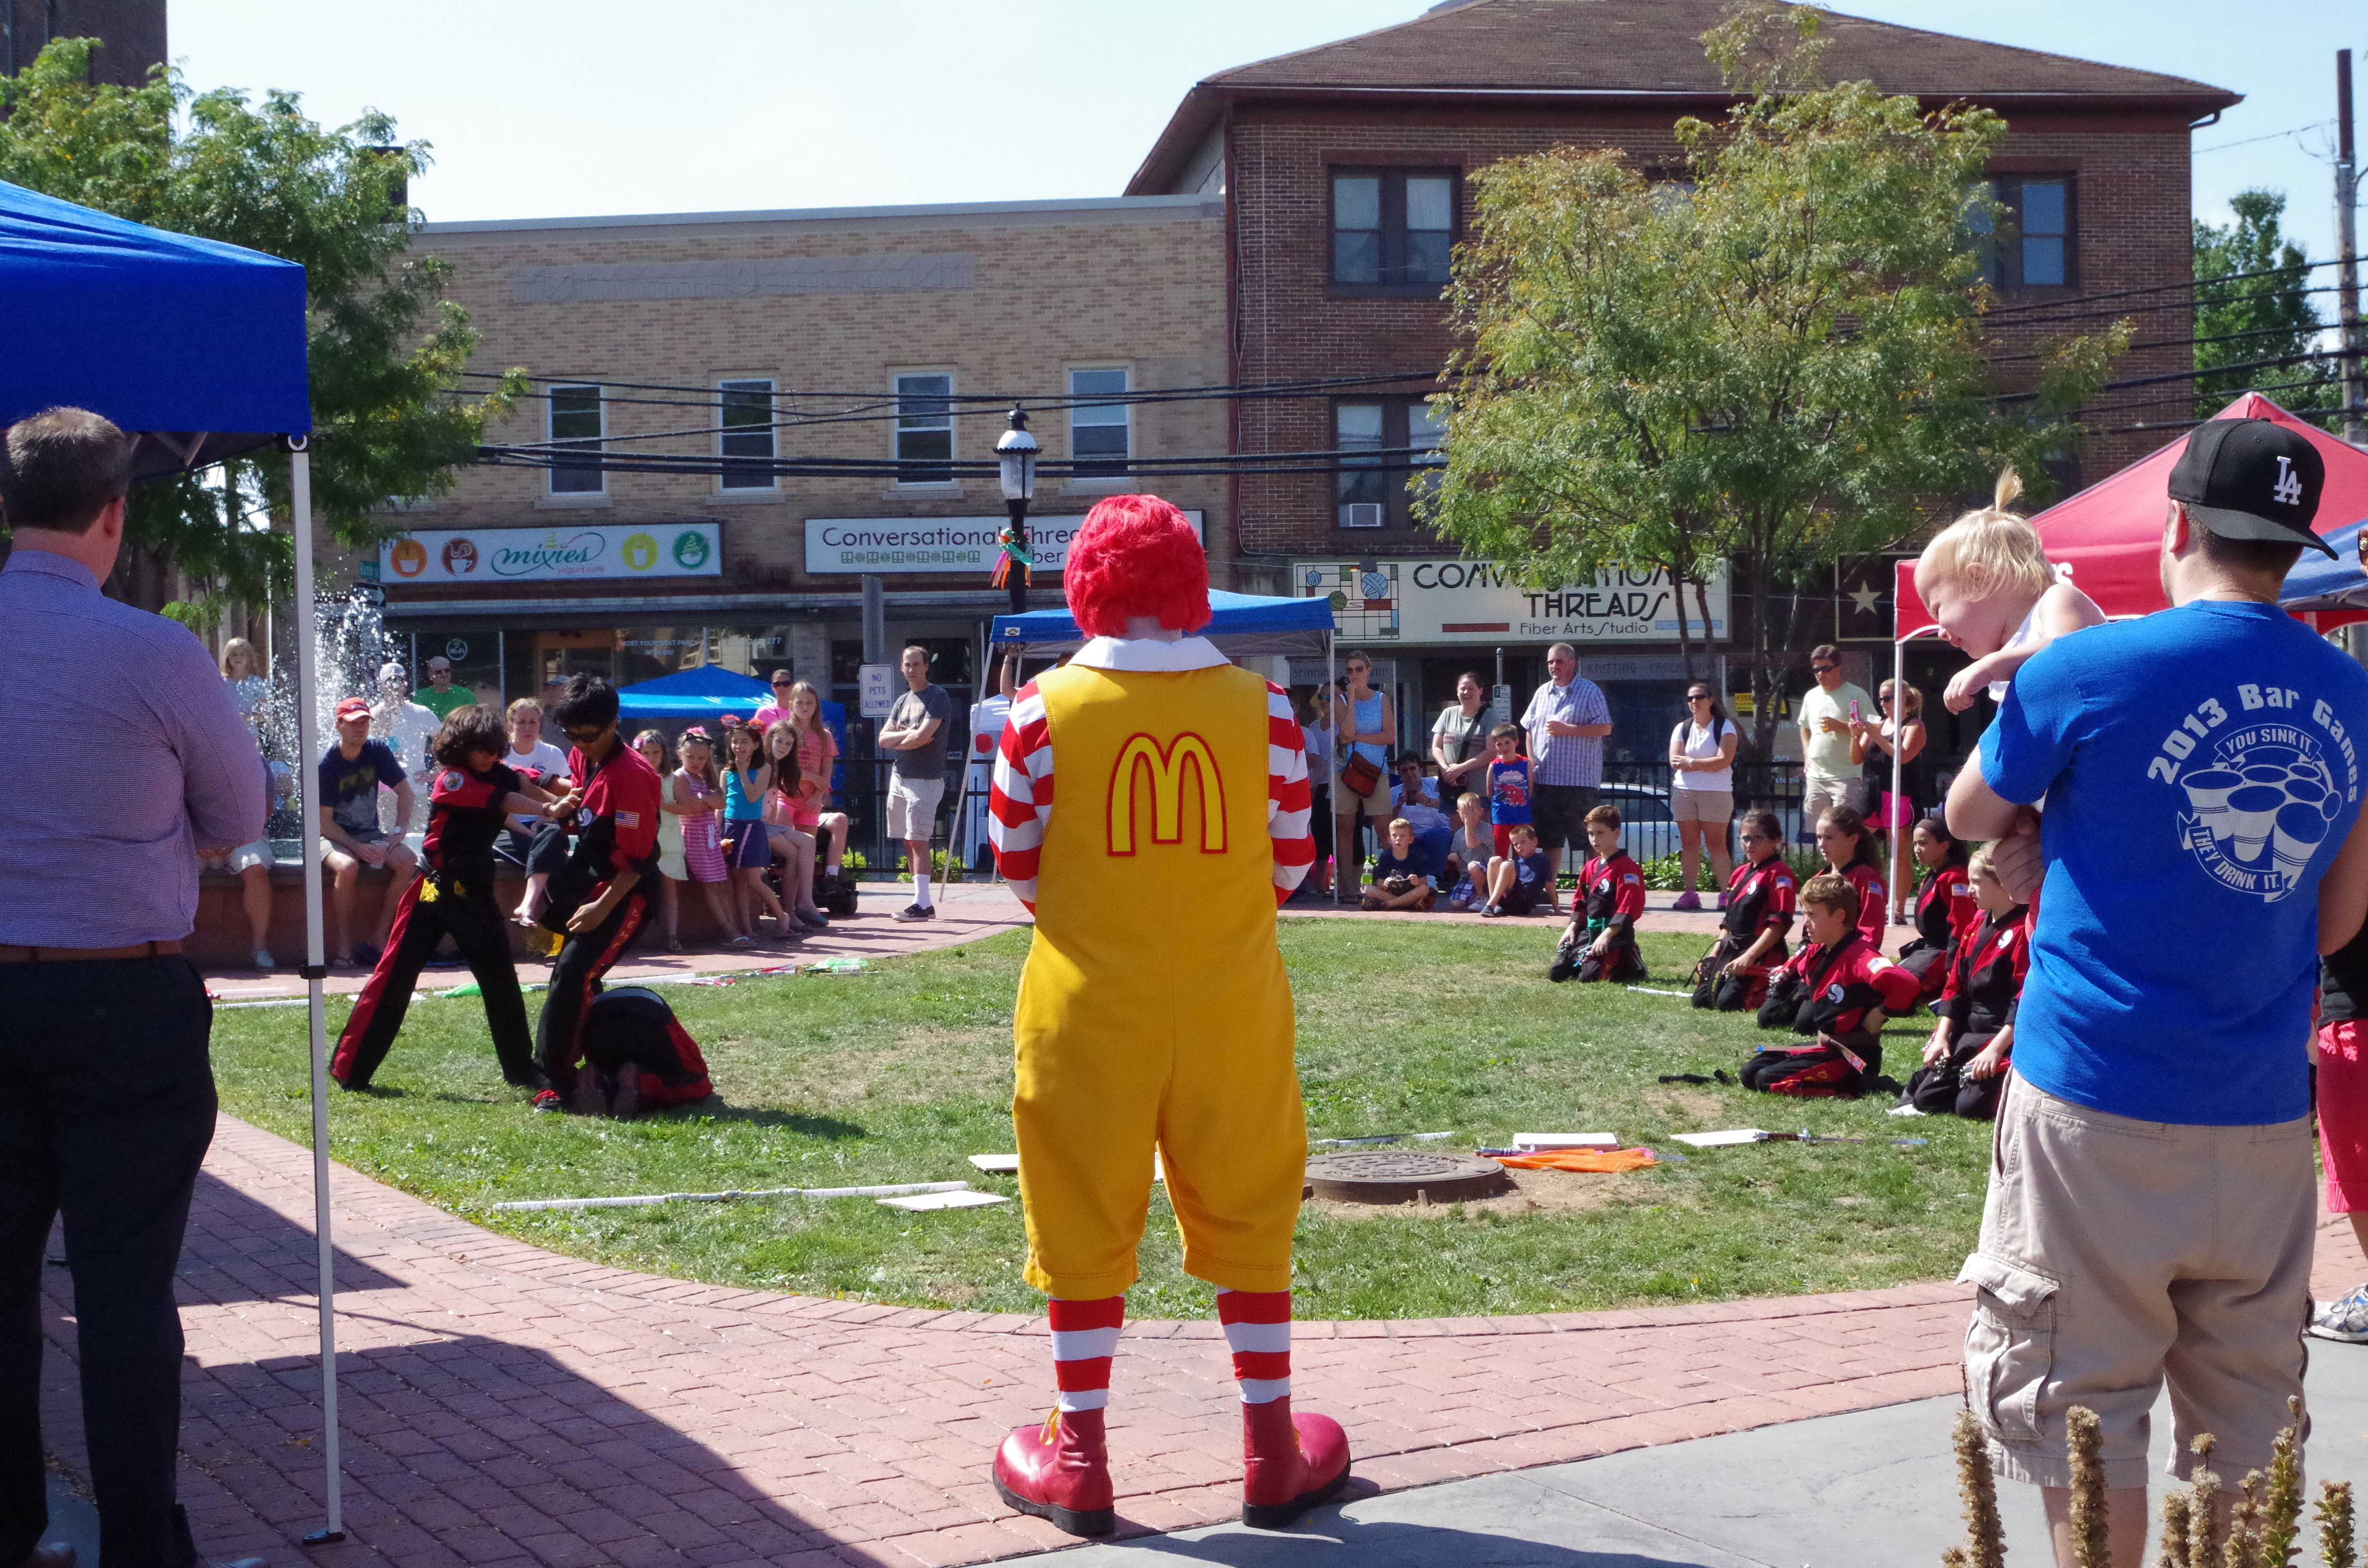 Ronald McDonald watches the martial arts performers. Photo by Cathryn Seibert